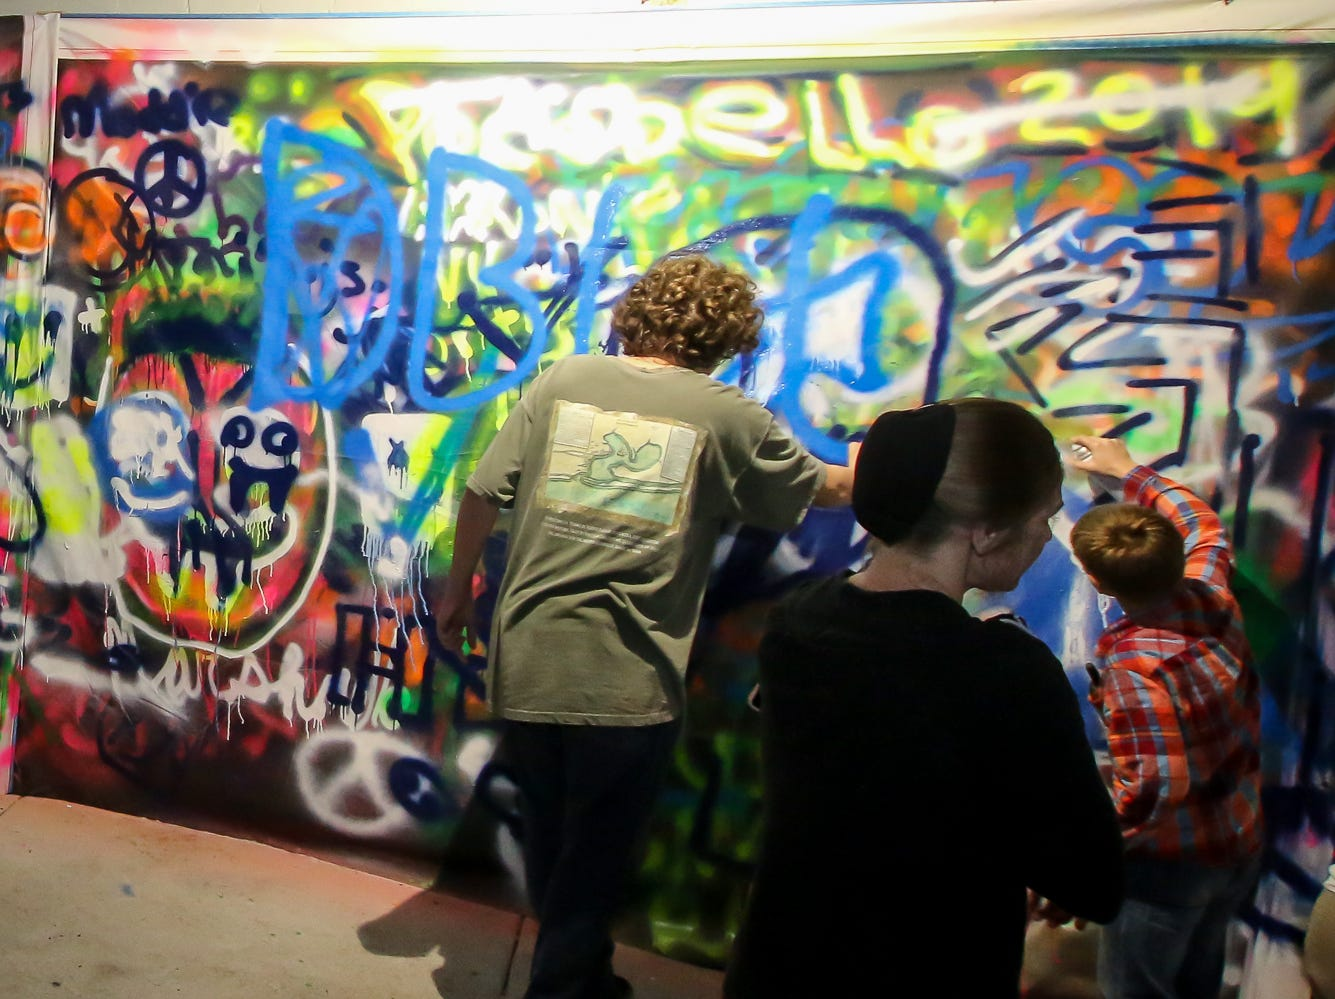 People spray paint on Zarzaur Law's Legal Graffiti wall during Gallery Night on Friday, February 22, 2019.